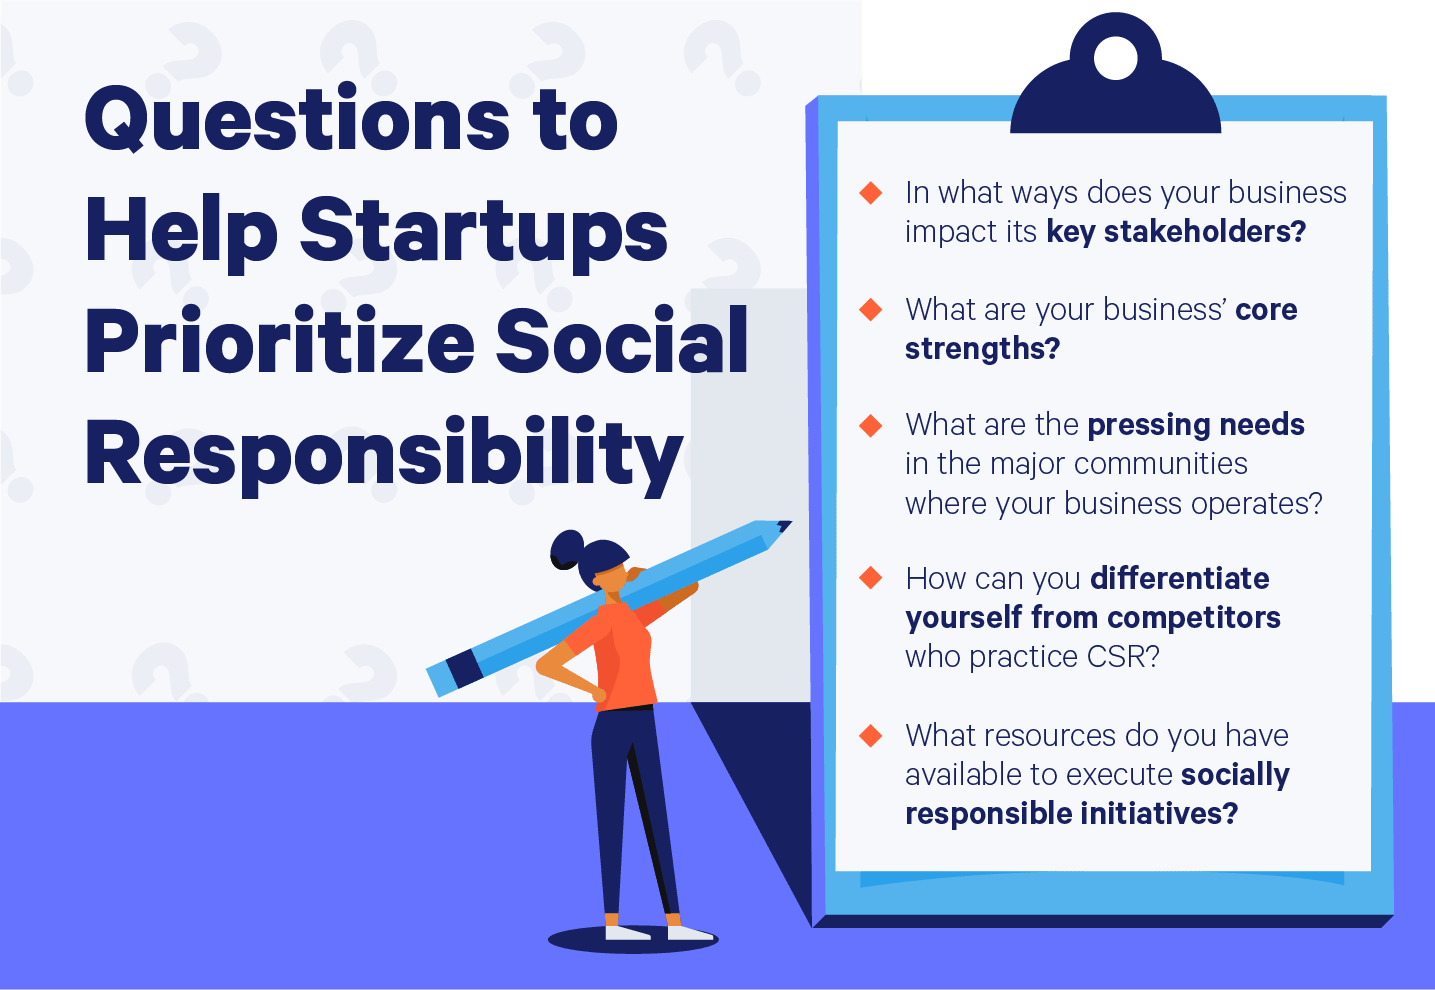 EB-04-Questions-for-startups-1